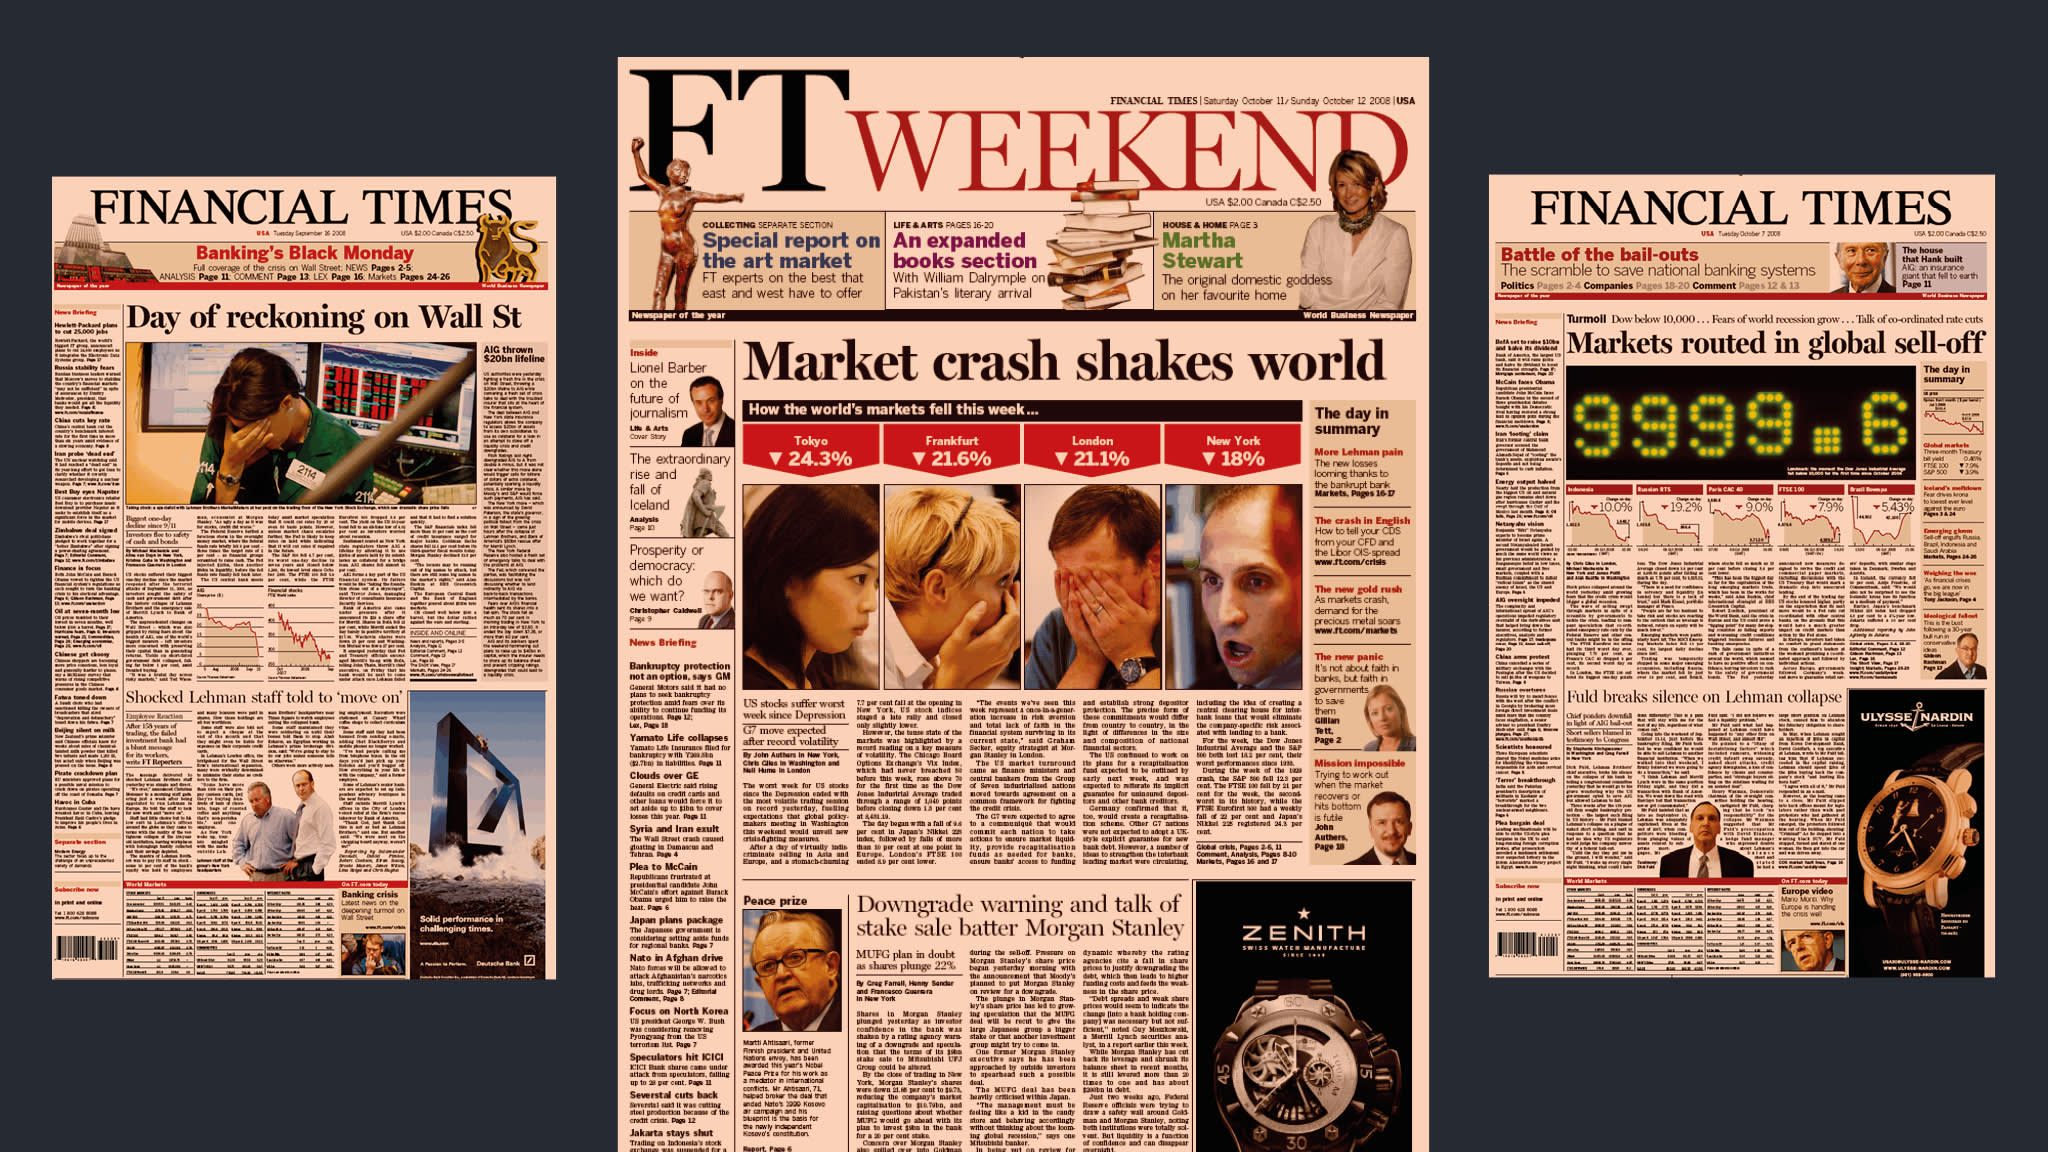 Financial crisis 2008: A reporter's memories from the front lines